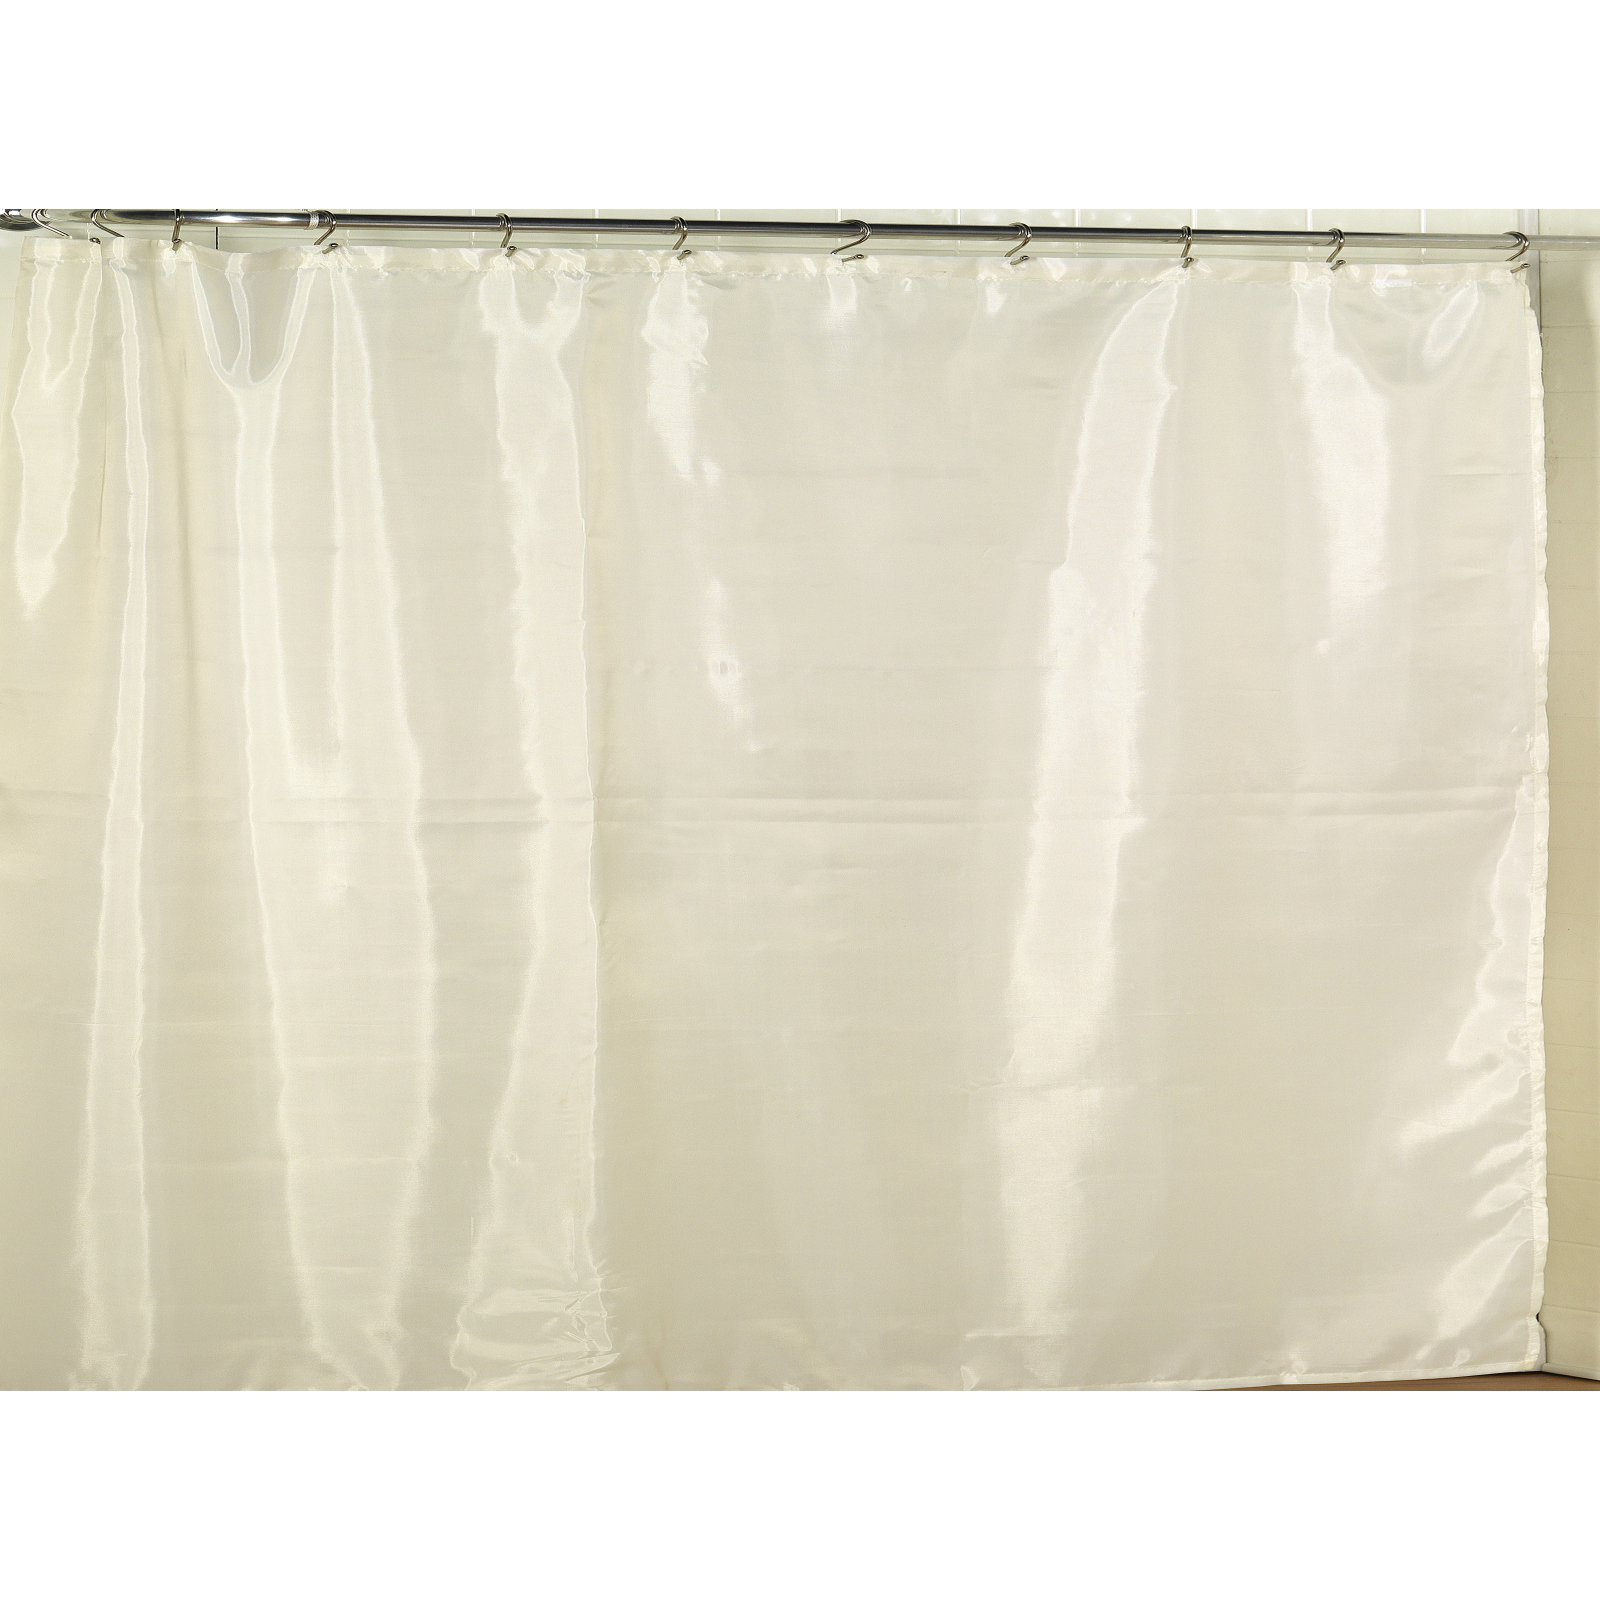 108 Long Shower Curtain Extra Wide Polyester Fabric Shower Curtain Liner In Ivory